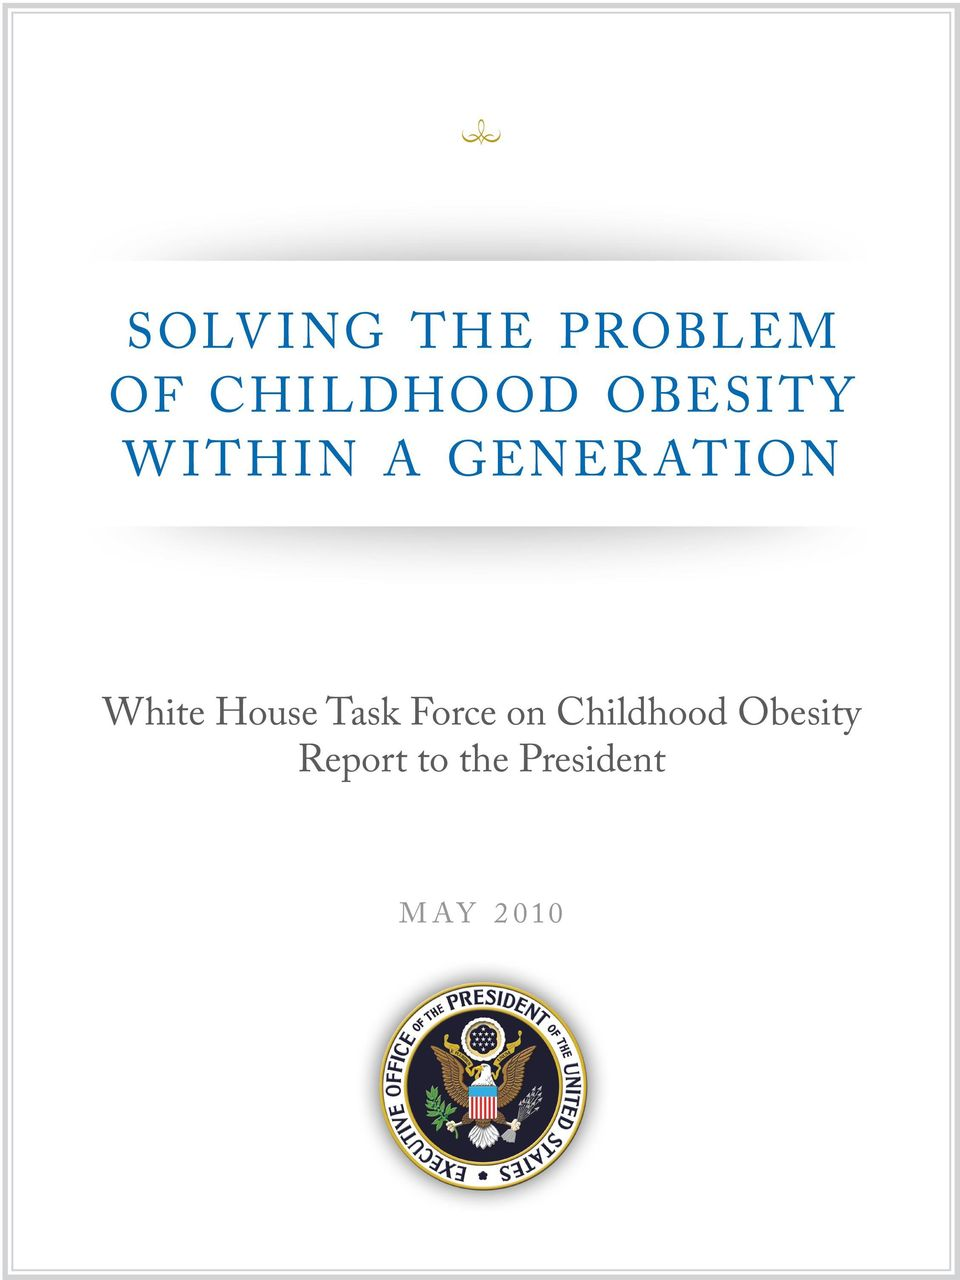 White House Task Force on Childhood